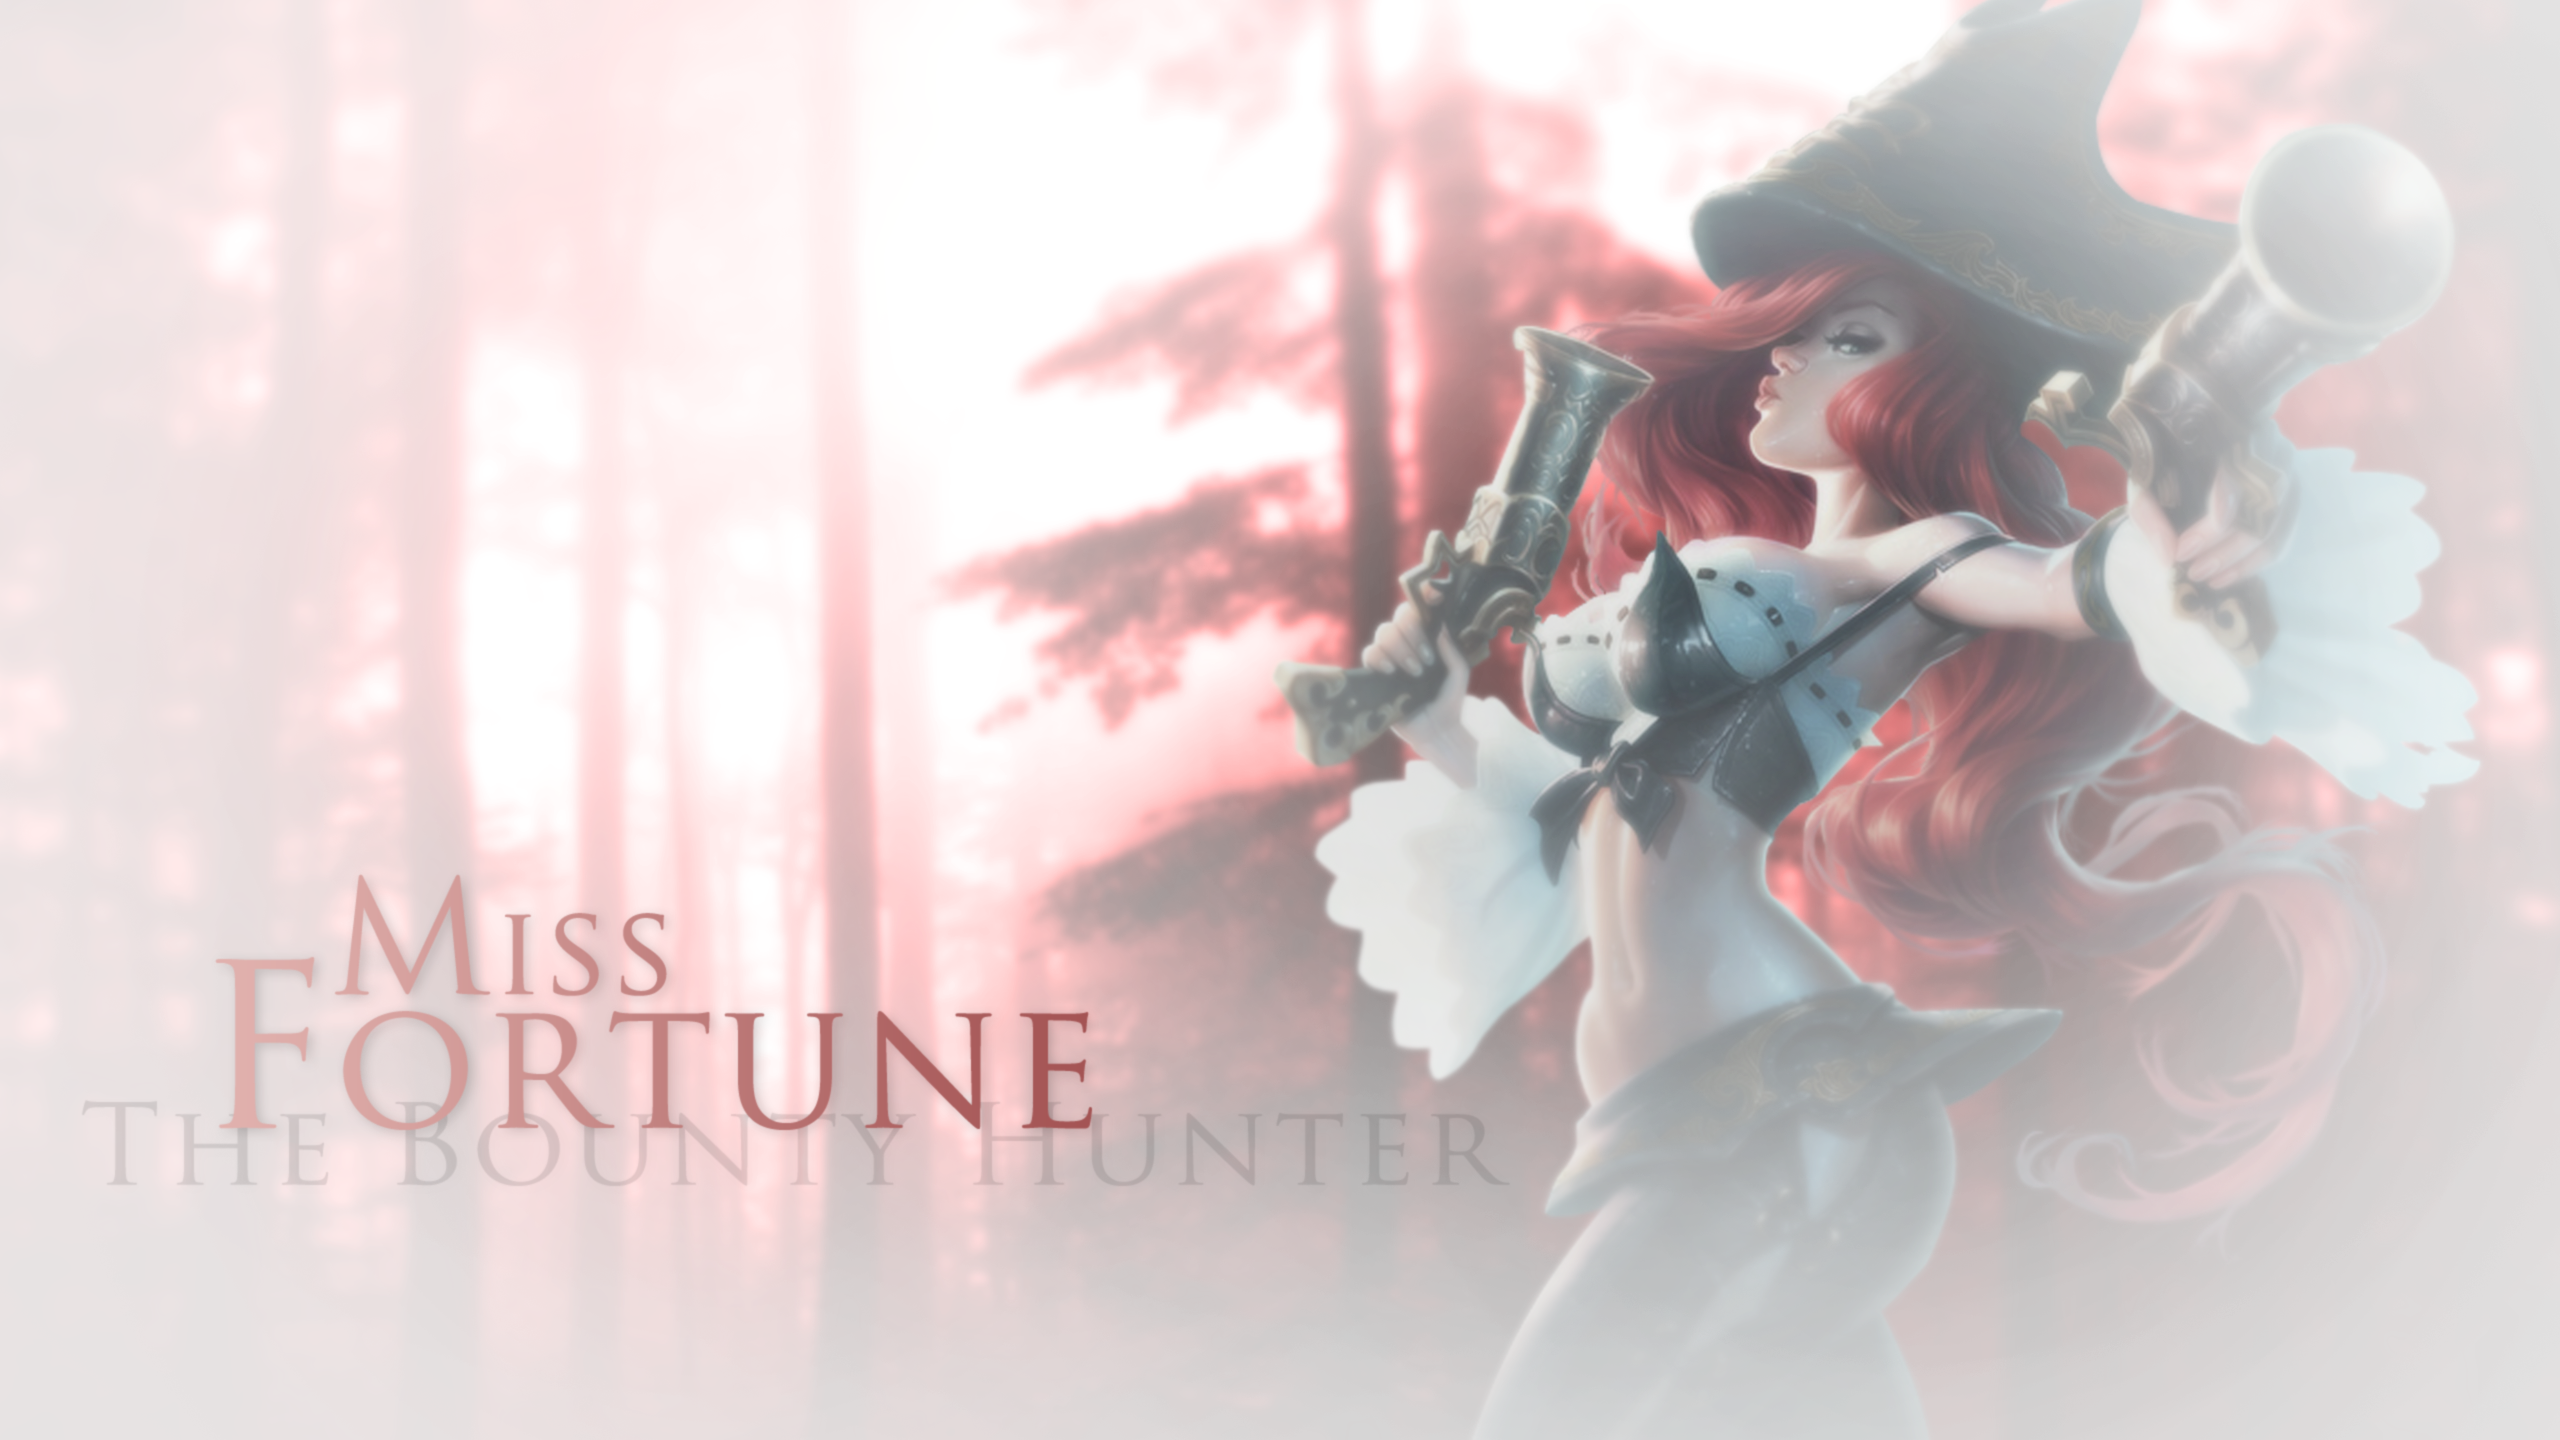 miss_fortune_wallpaper___white___league_of_legends_by_sonsofparagon-d69exnk